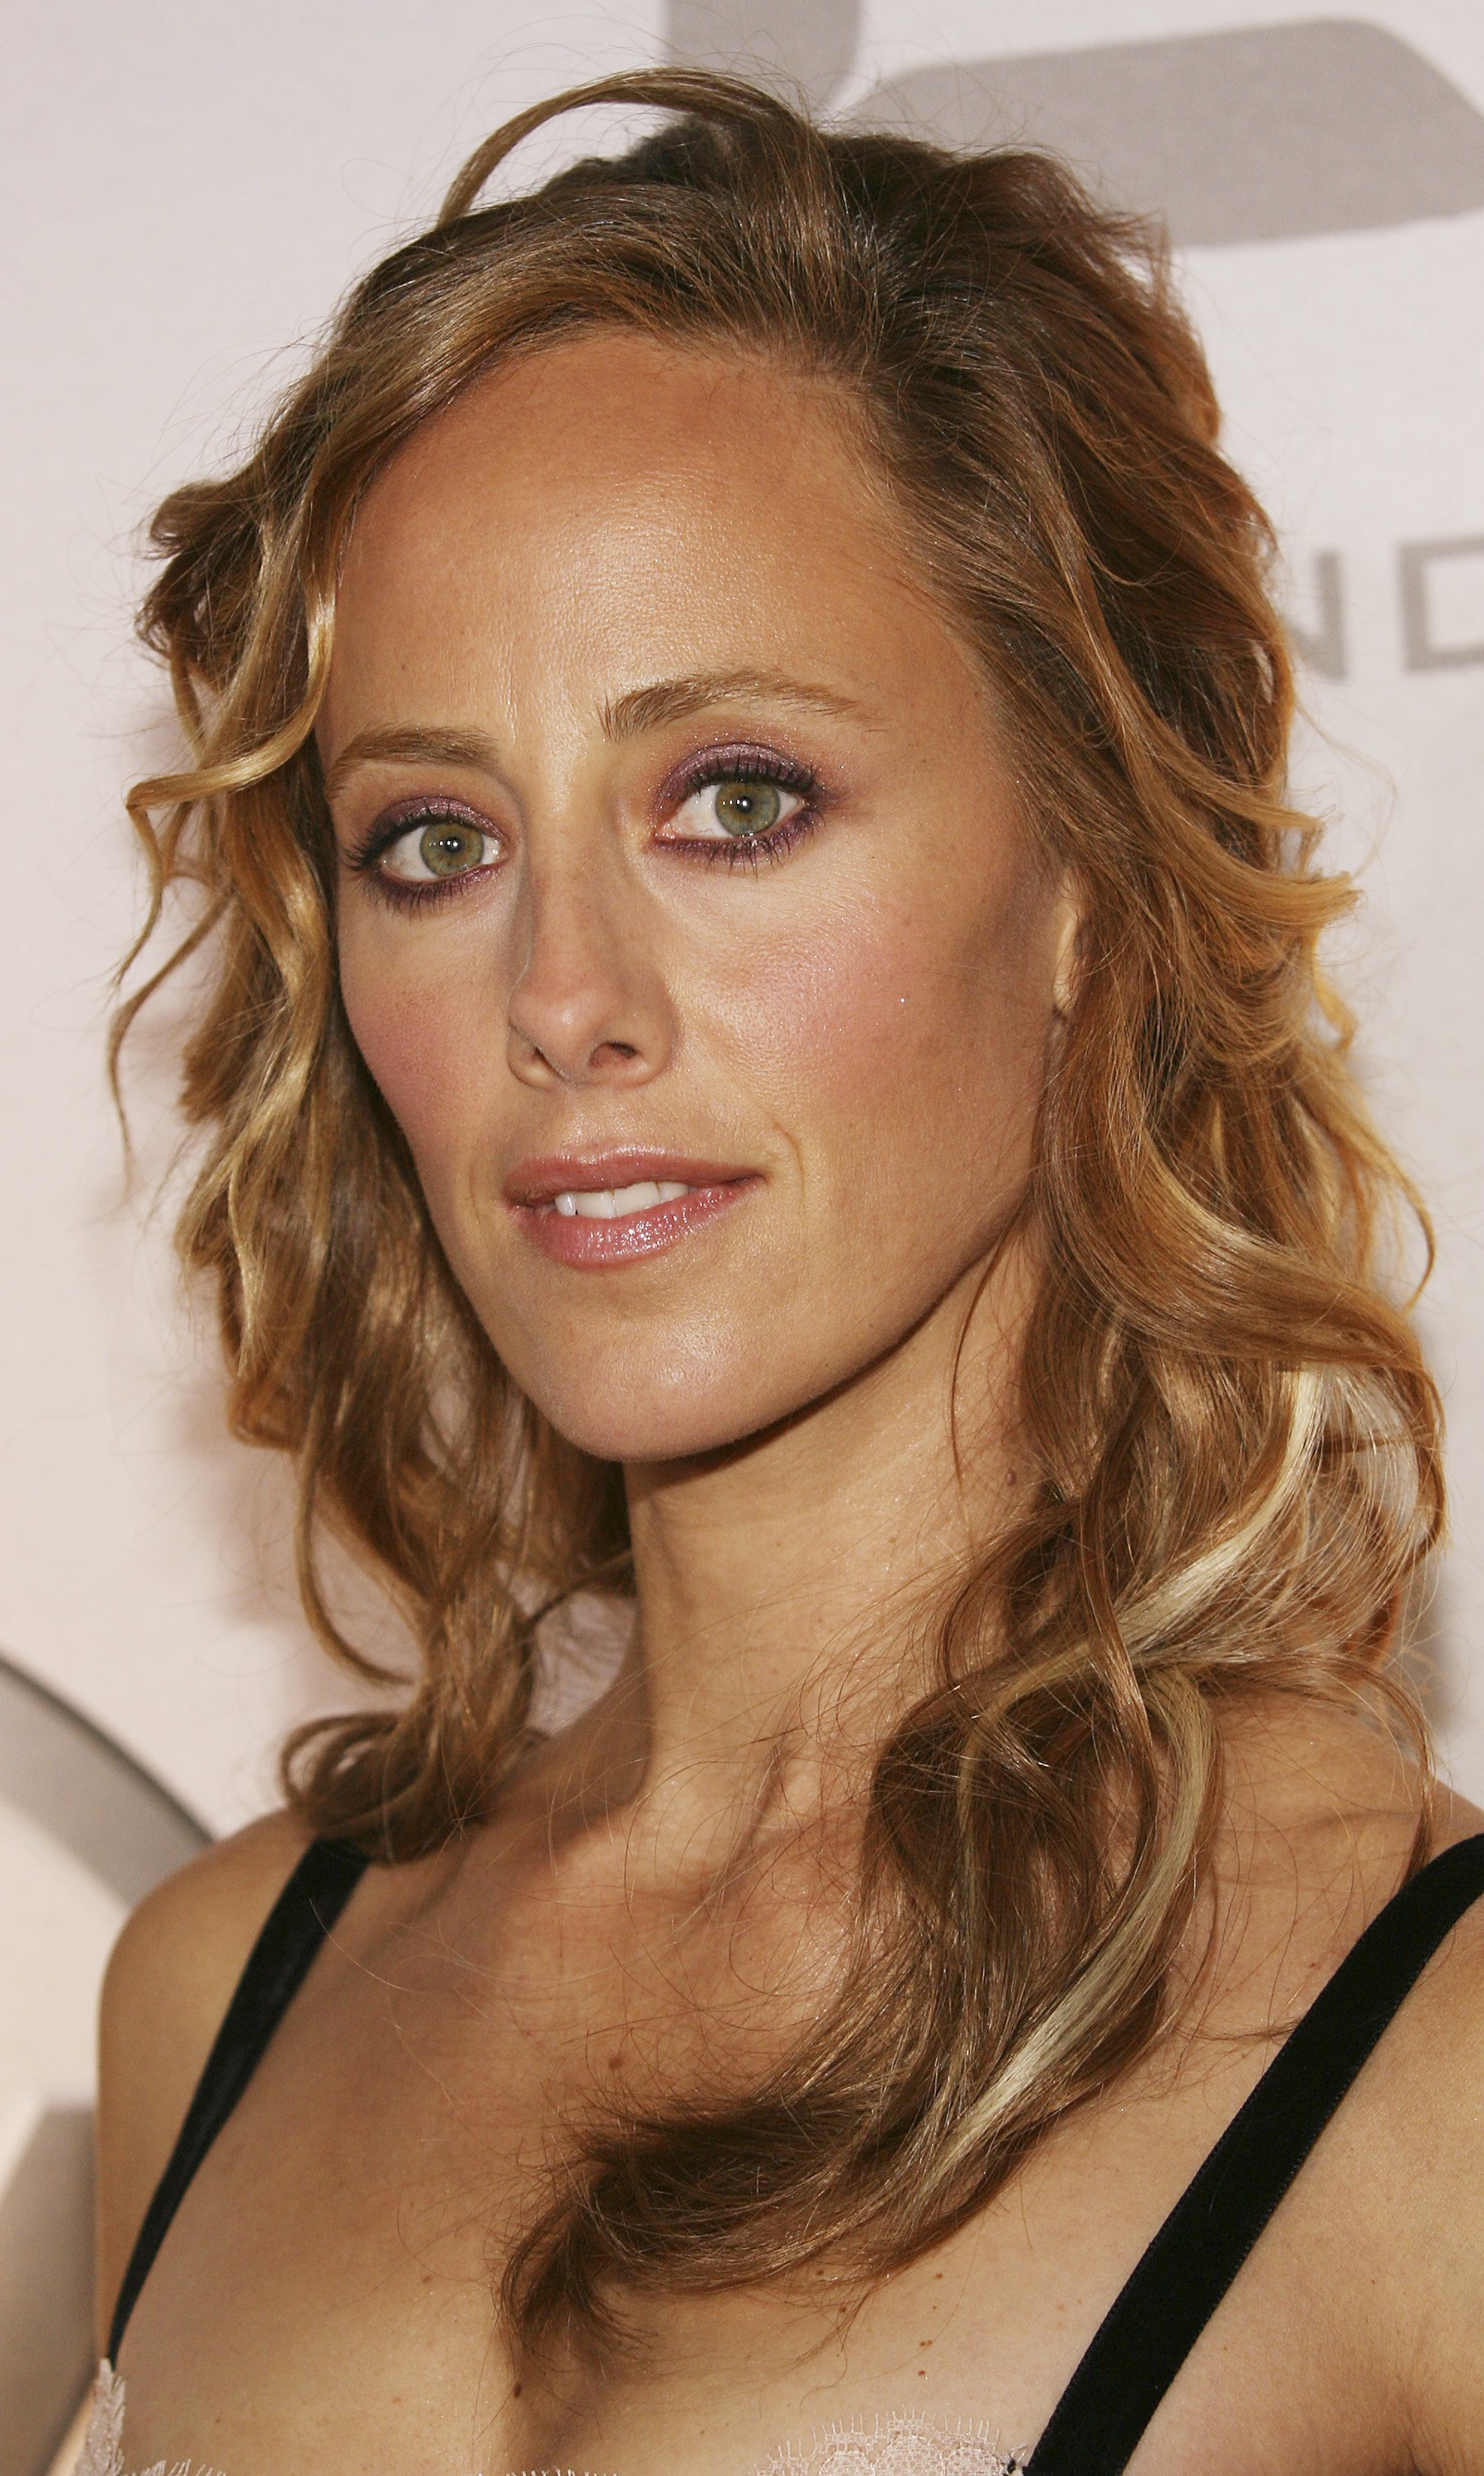 Watch Kim Raver video